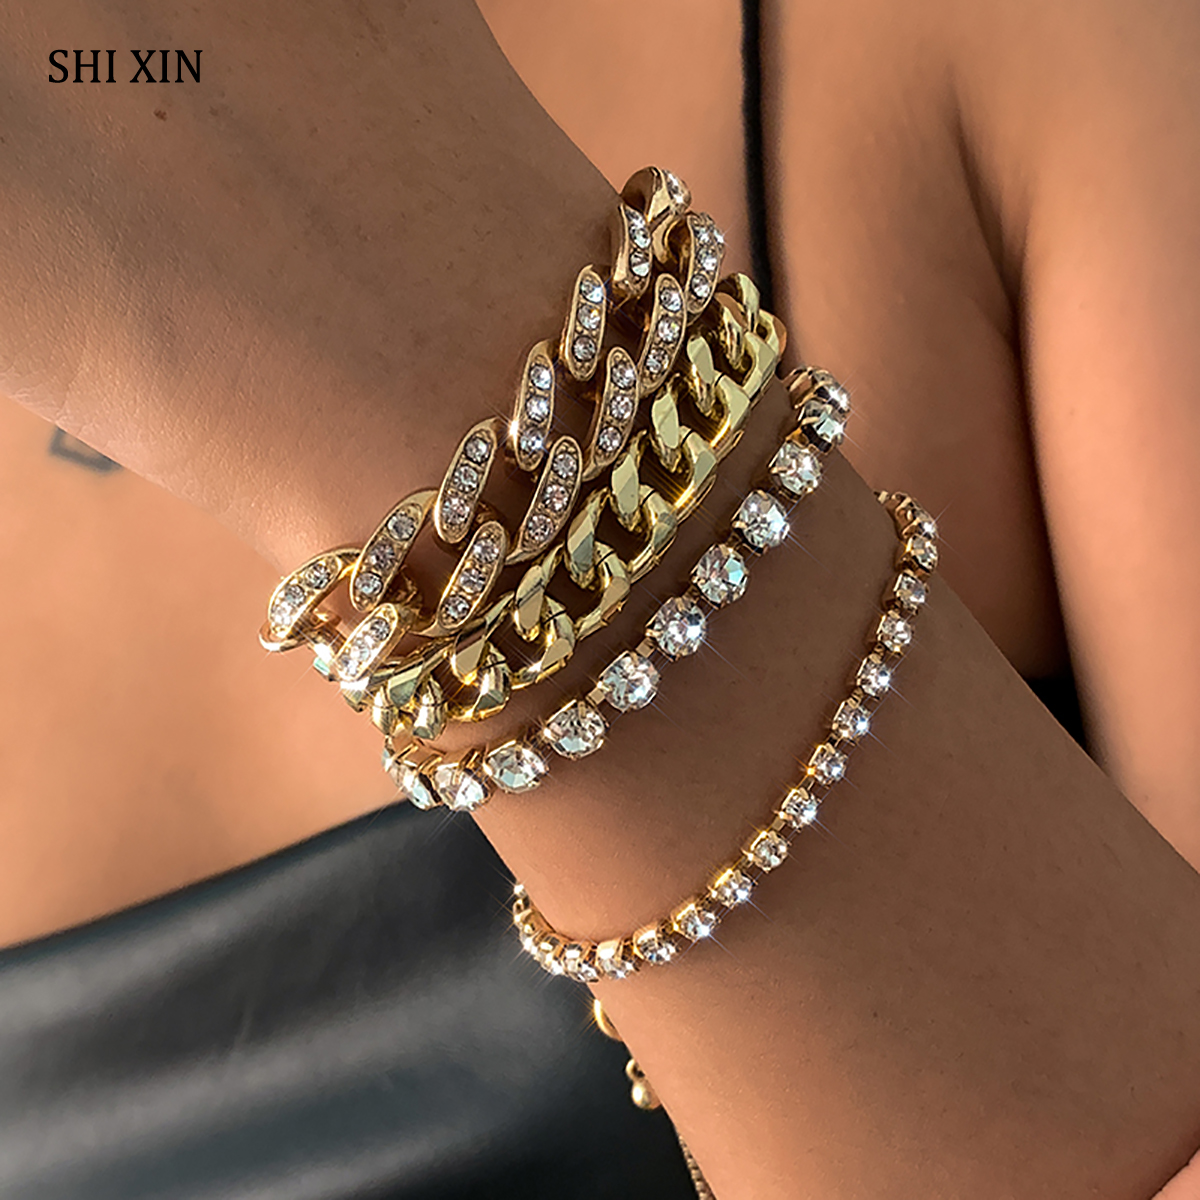 SHIXIN Hiphop Thick Iced Out Chain Bracelets Set for Women Shiny Rhinestone Charm Bracelet Hand Chain Crystal Bracelet 2021 Gift